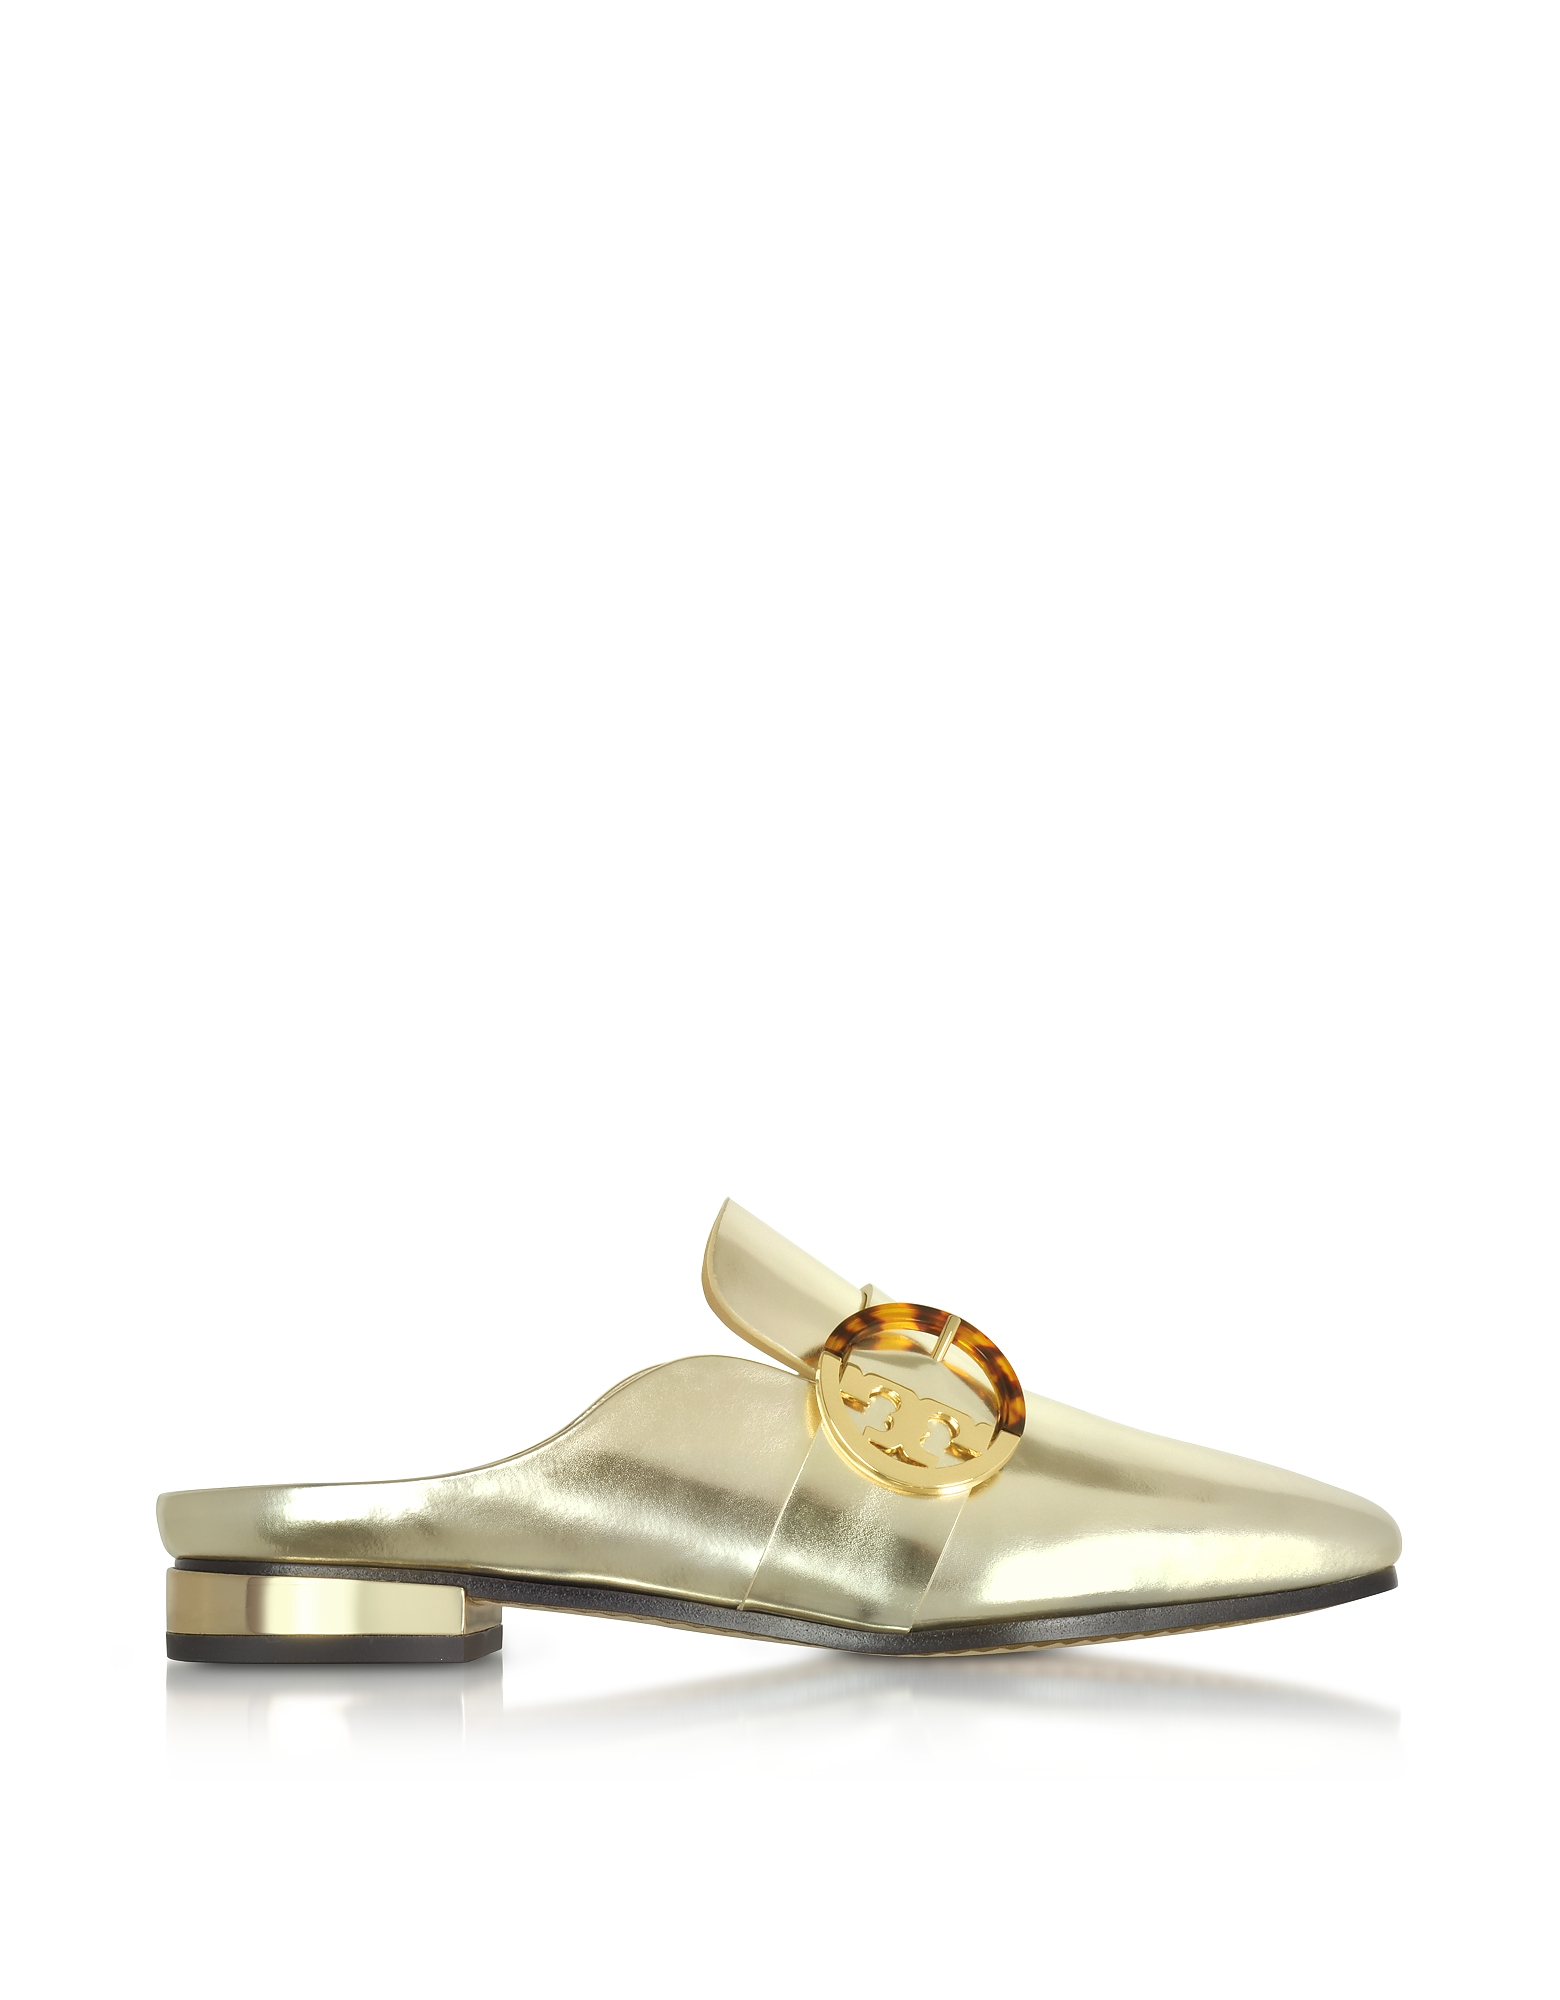 Tory Burch Shoes, Sidney Spark Gold Metallic Leather Backless Loafers